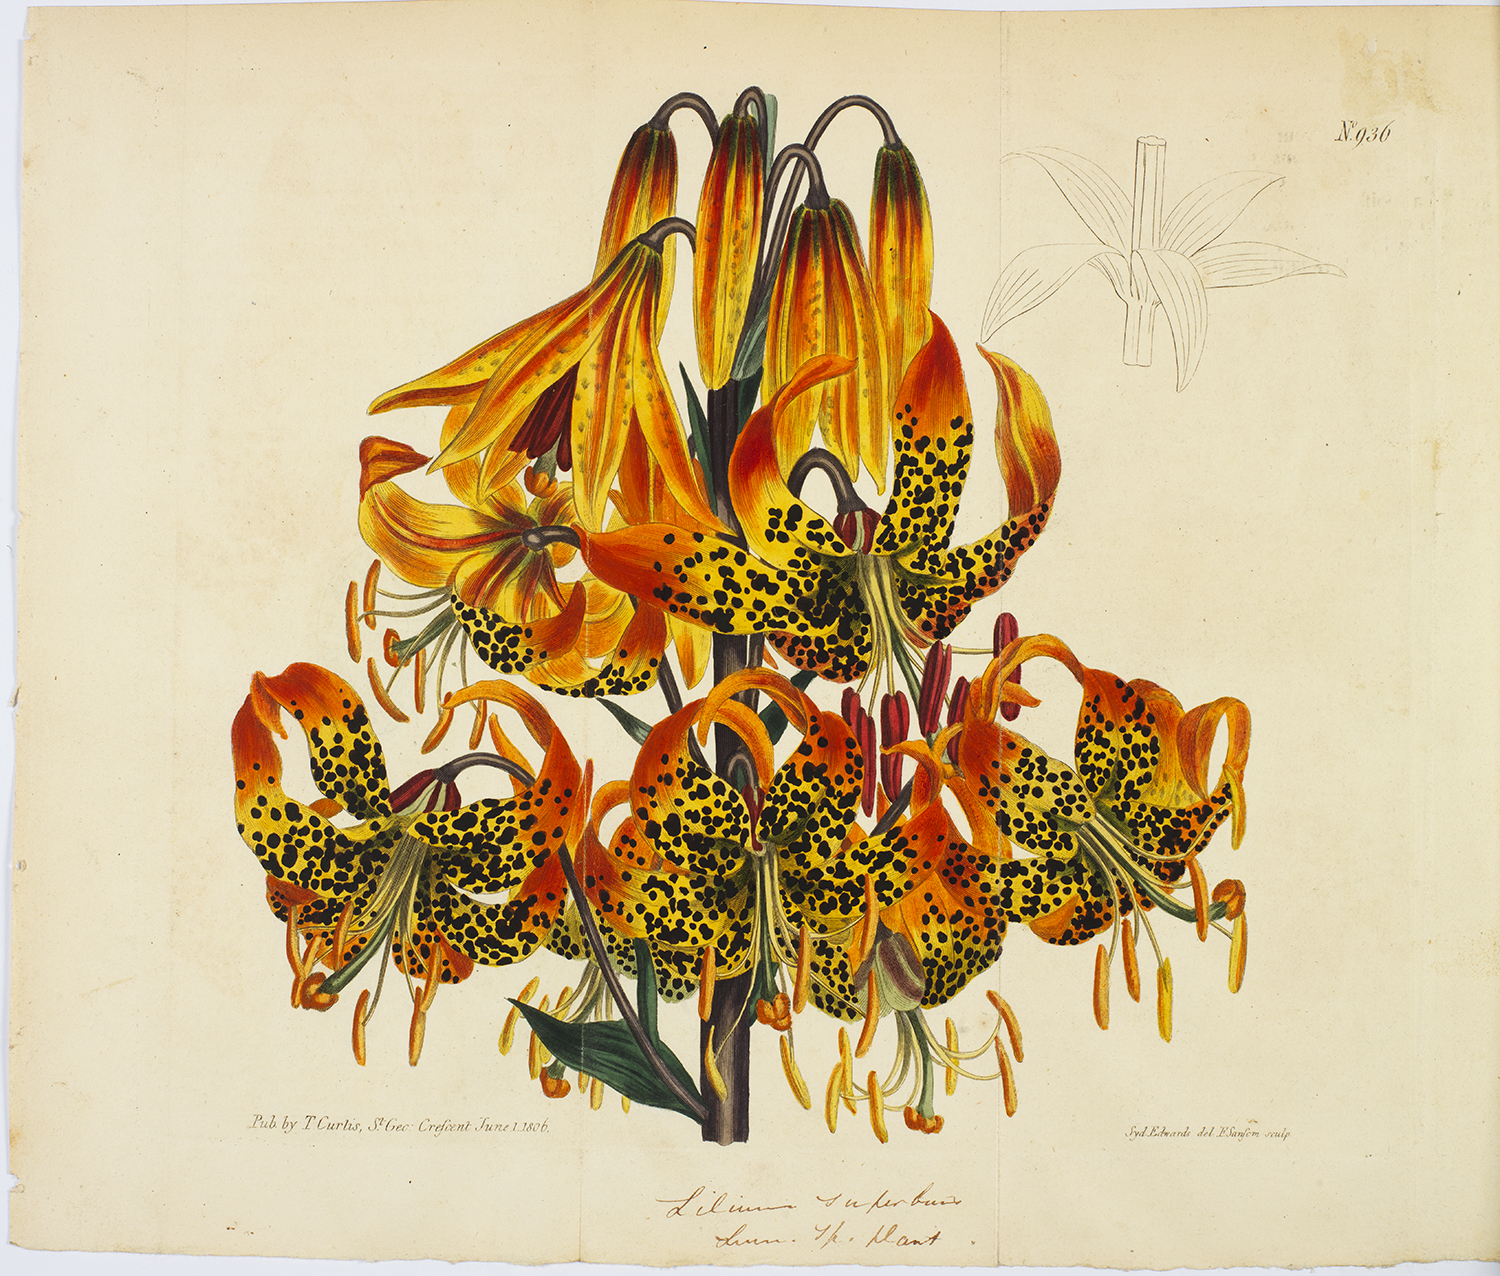 A hand drawn illustration of Leopard Orchids